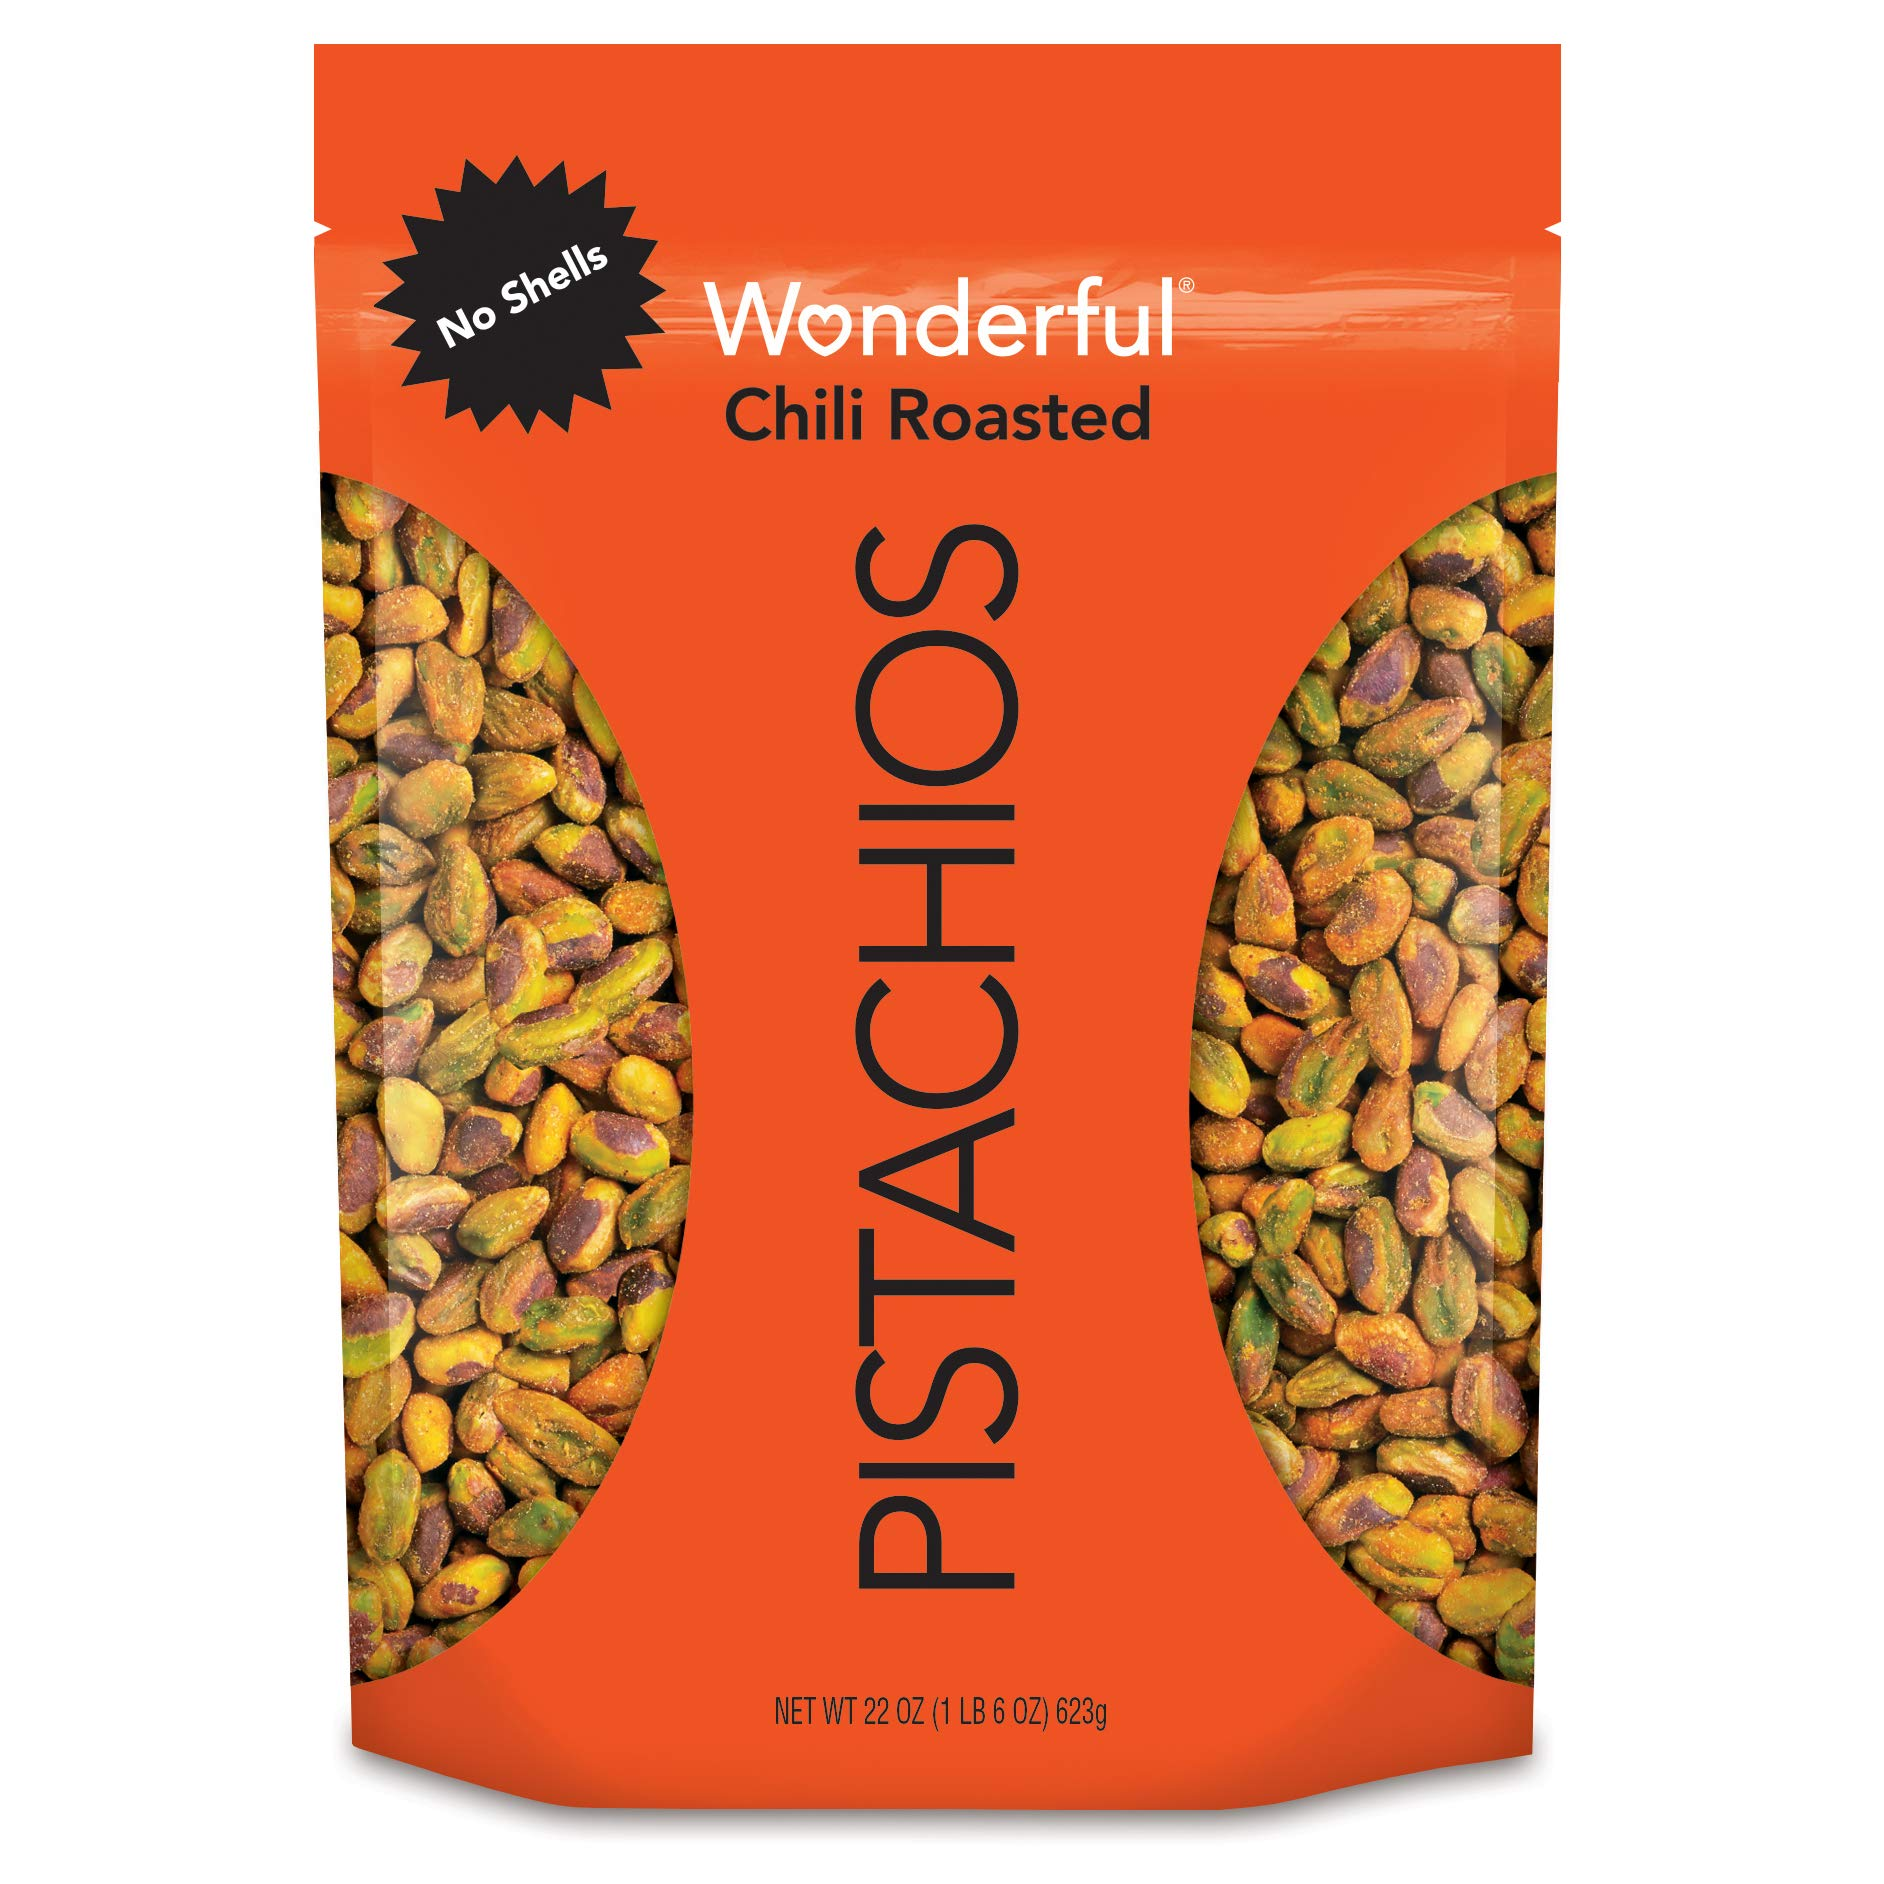 Wonderful Pistachios, No Shells, Chili Roasted, 22 Oz Resealable Bag by Wonderful Pistachios & Almonds